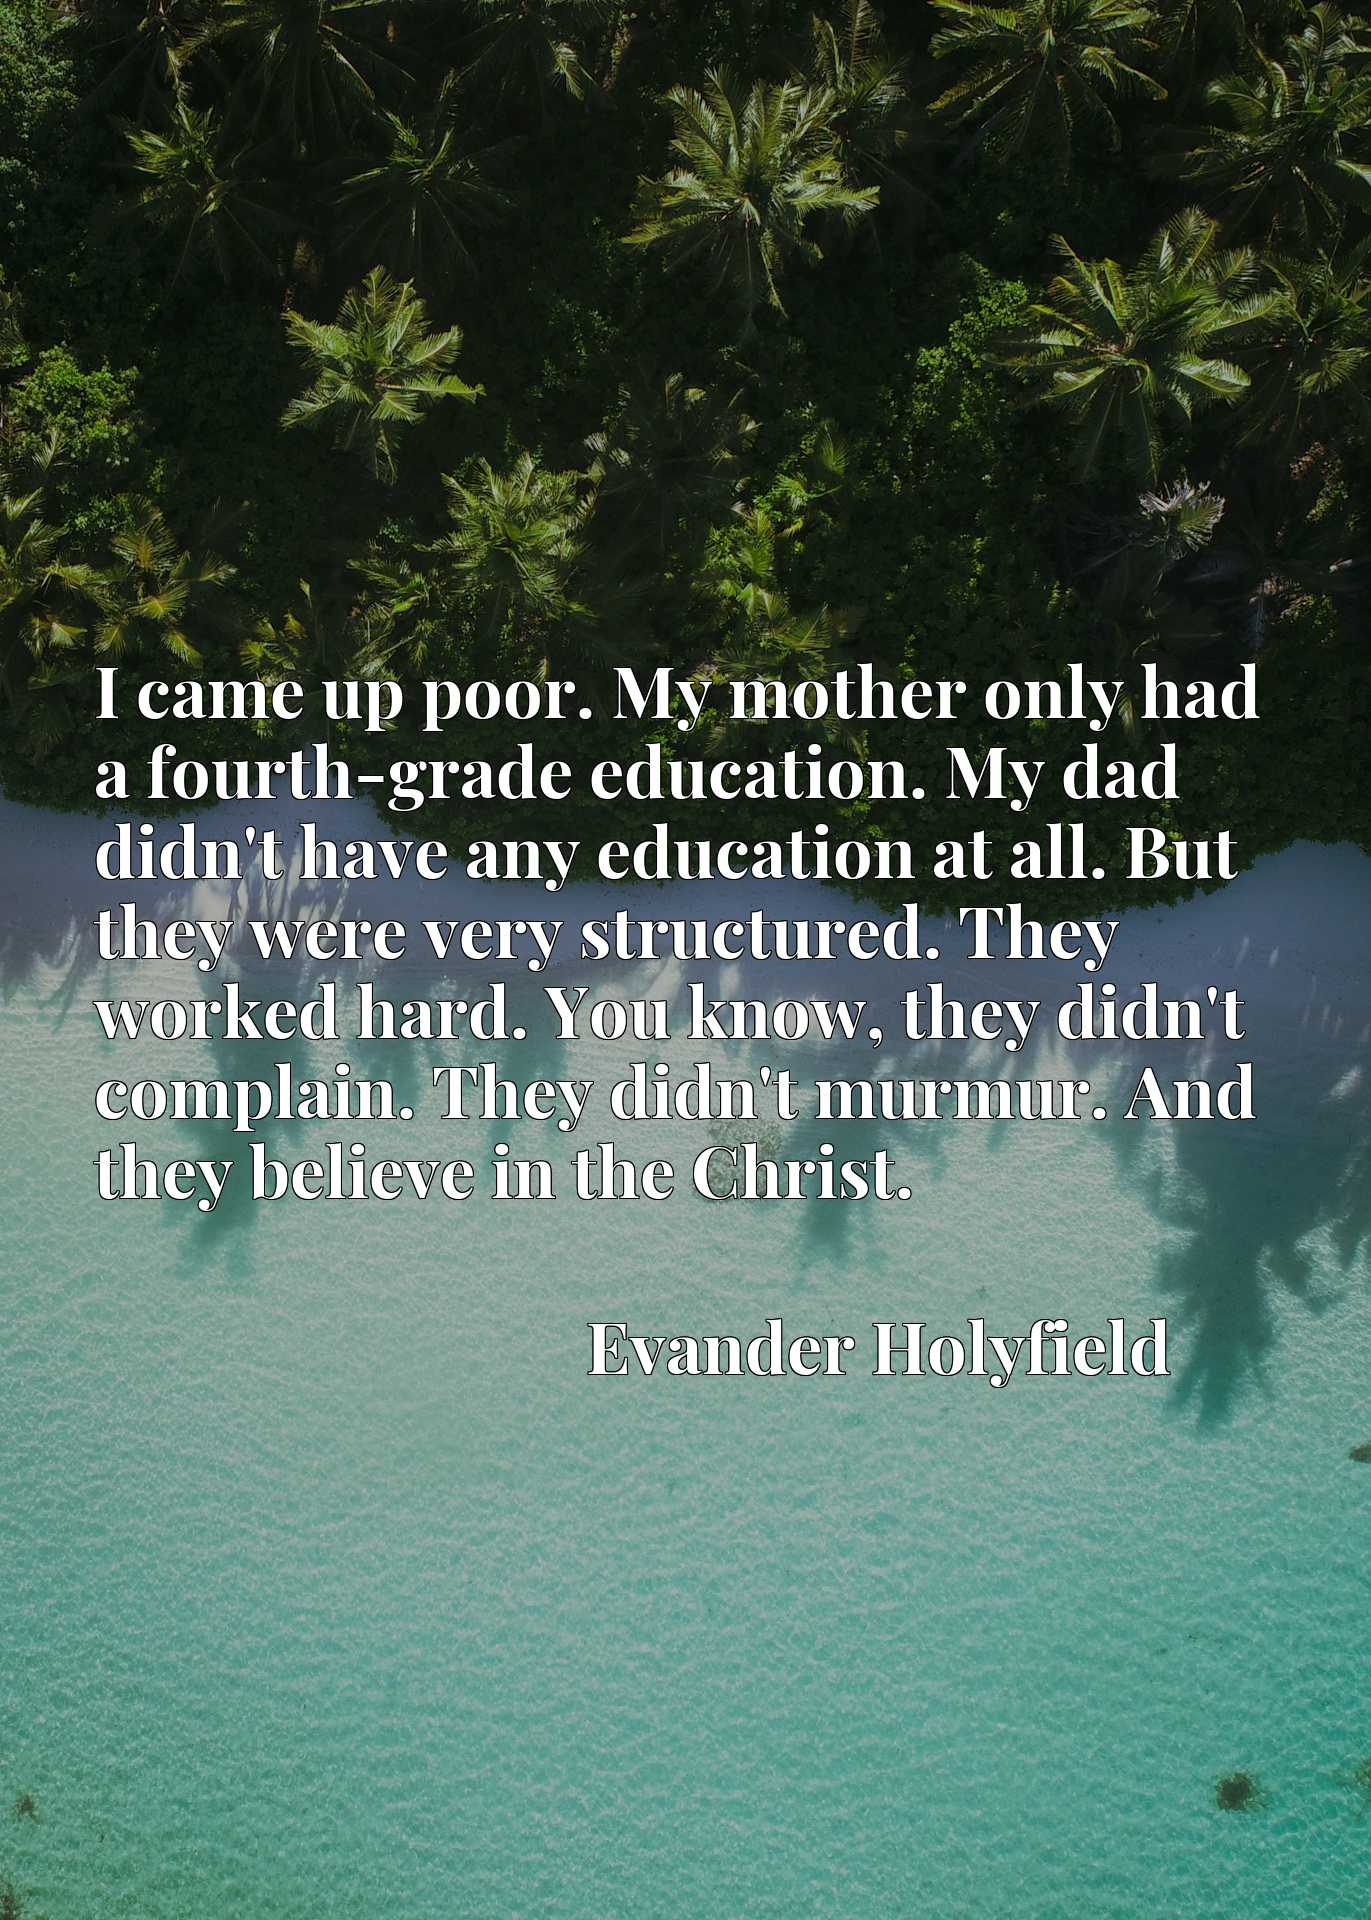 I came up poor. My mother only had a fourth-grade education. My dad didn't have any education at all. But they were very structured. They worked hard. You know, they didn't complain. They didn't murmur. And they believe in the Christ.